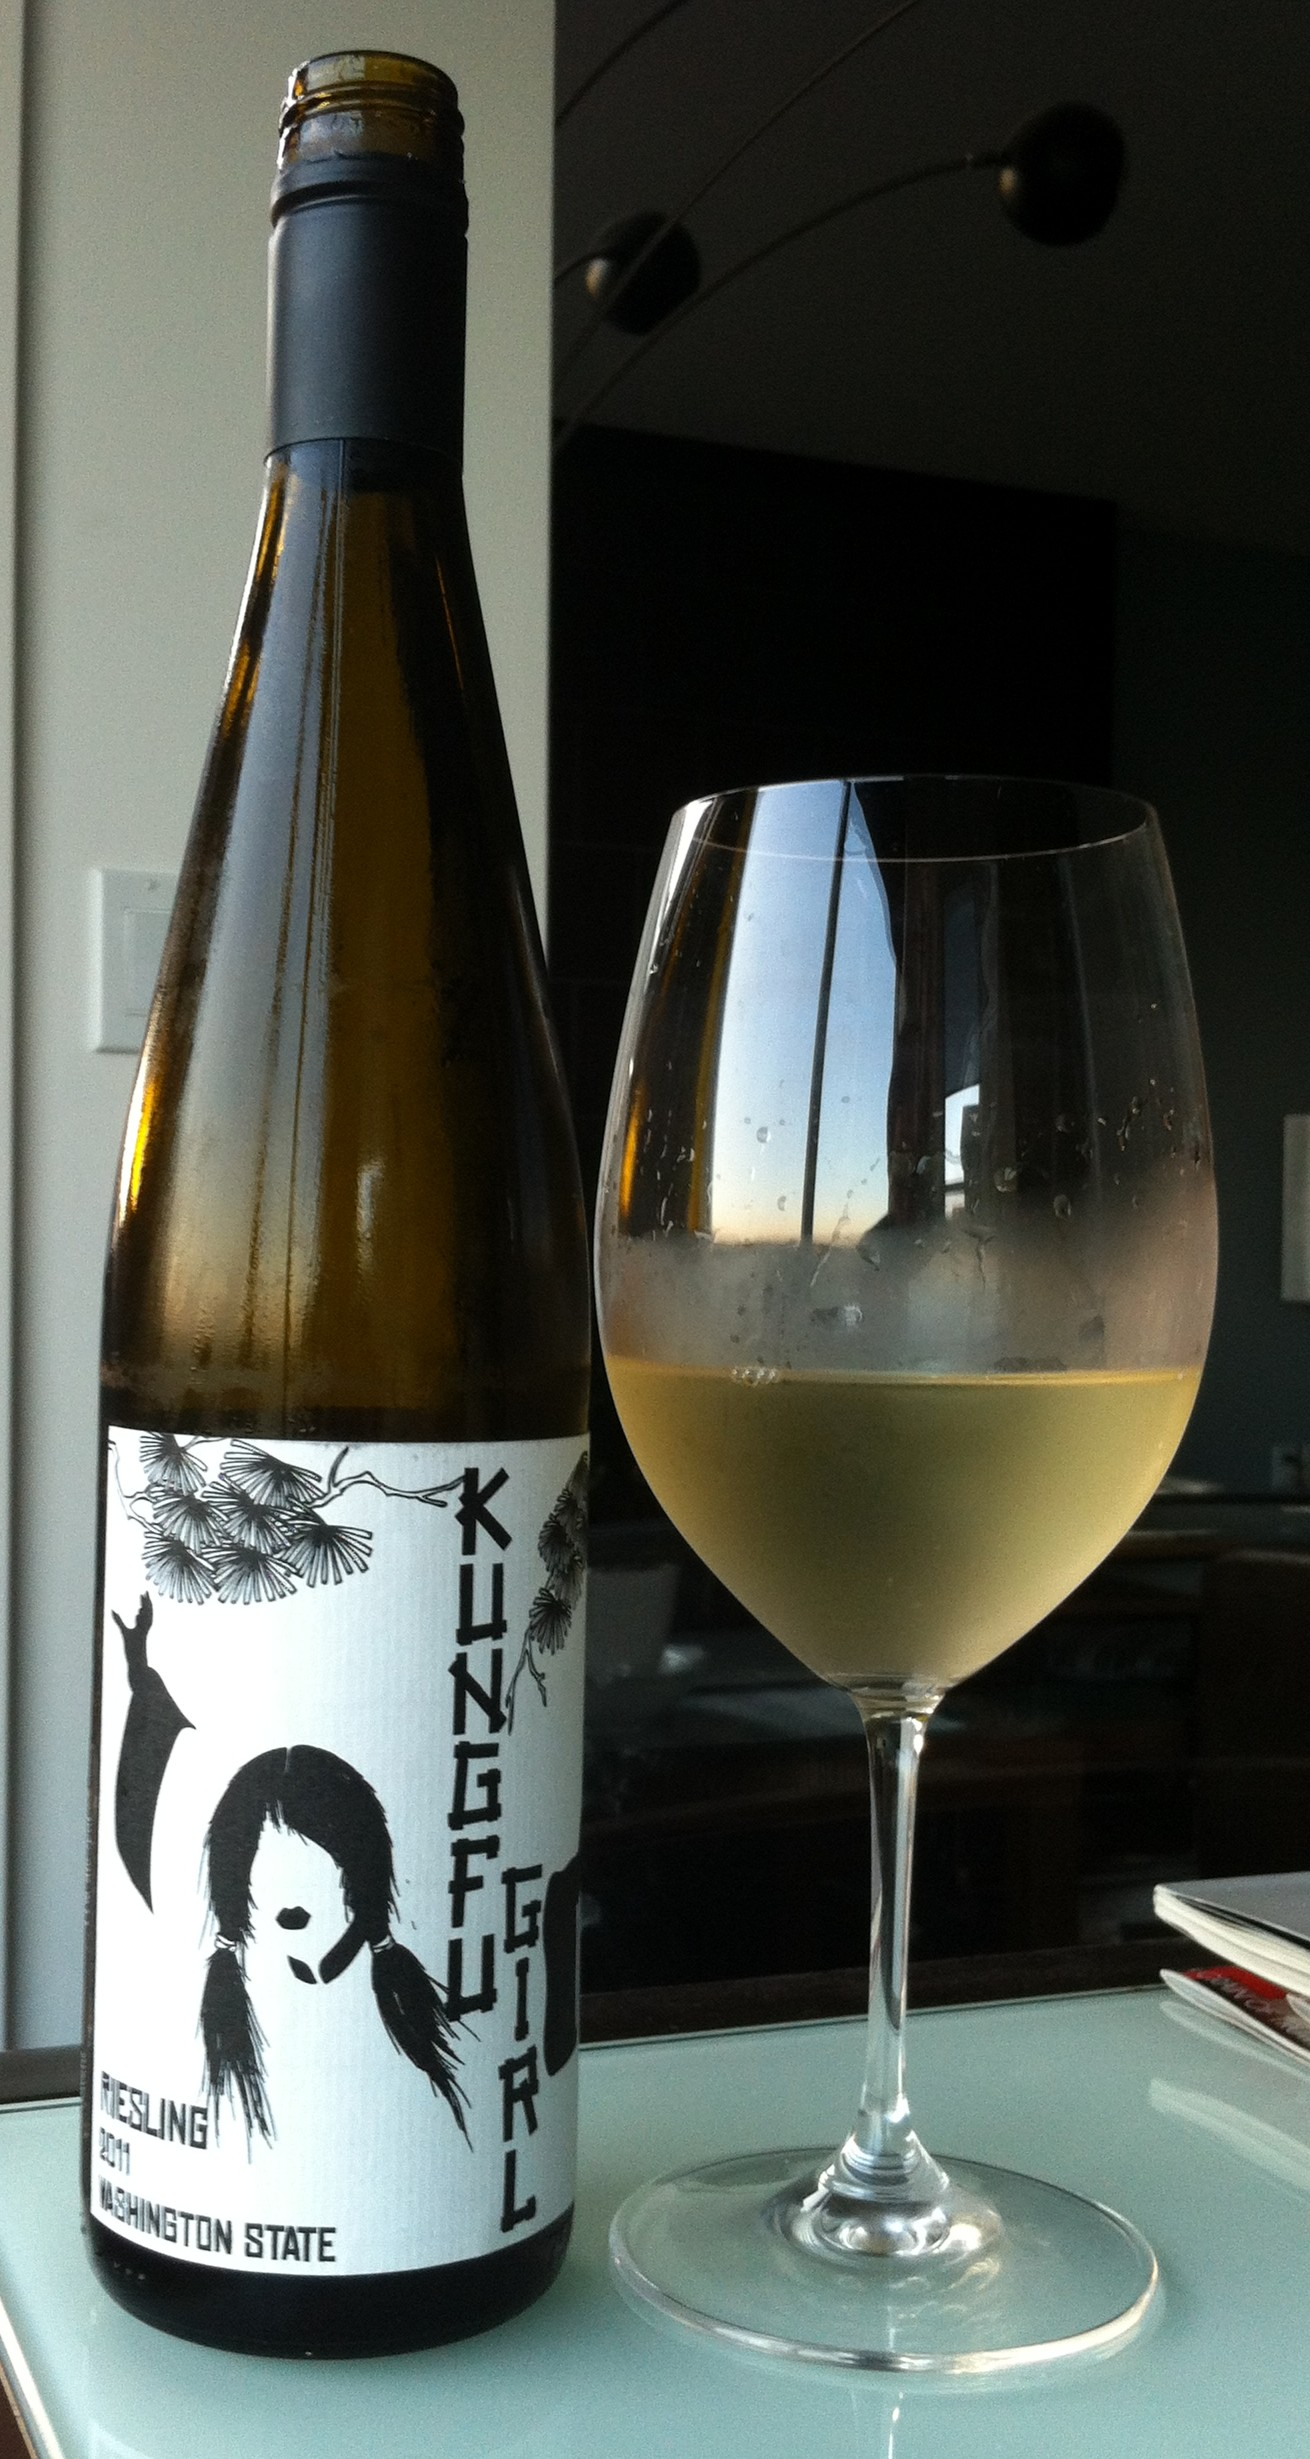 Kung fu girl riesling where to buy — photo 1